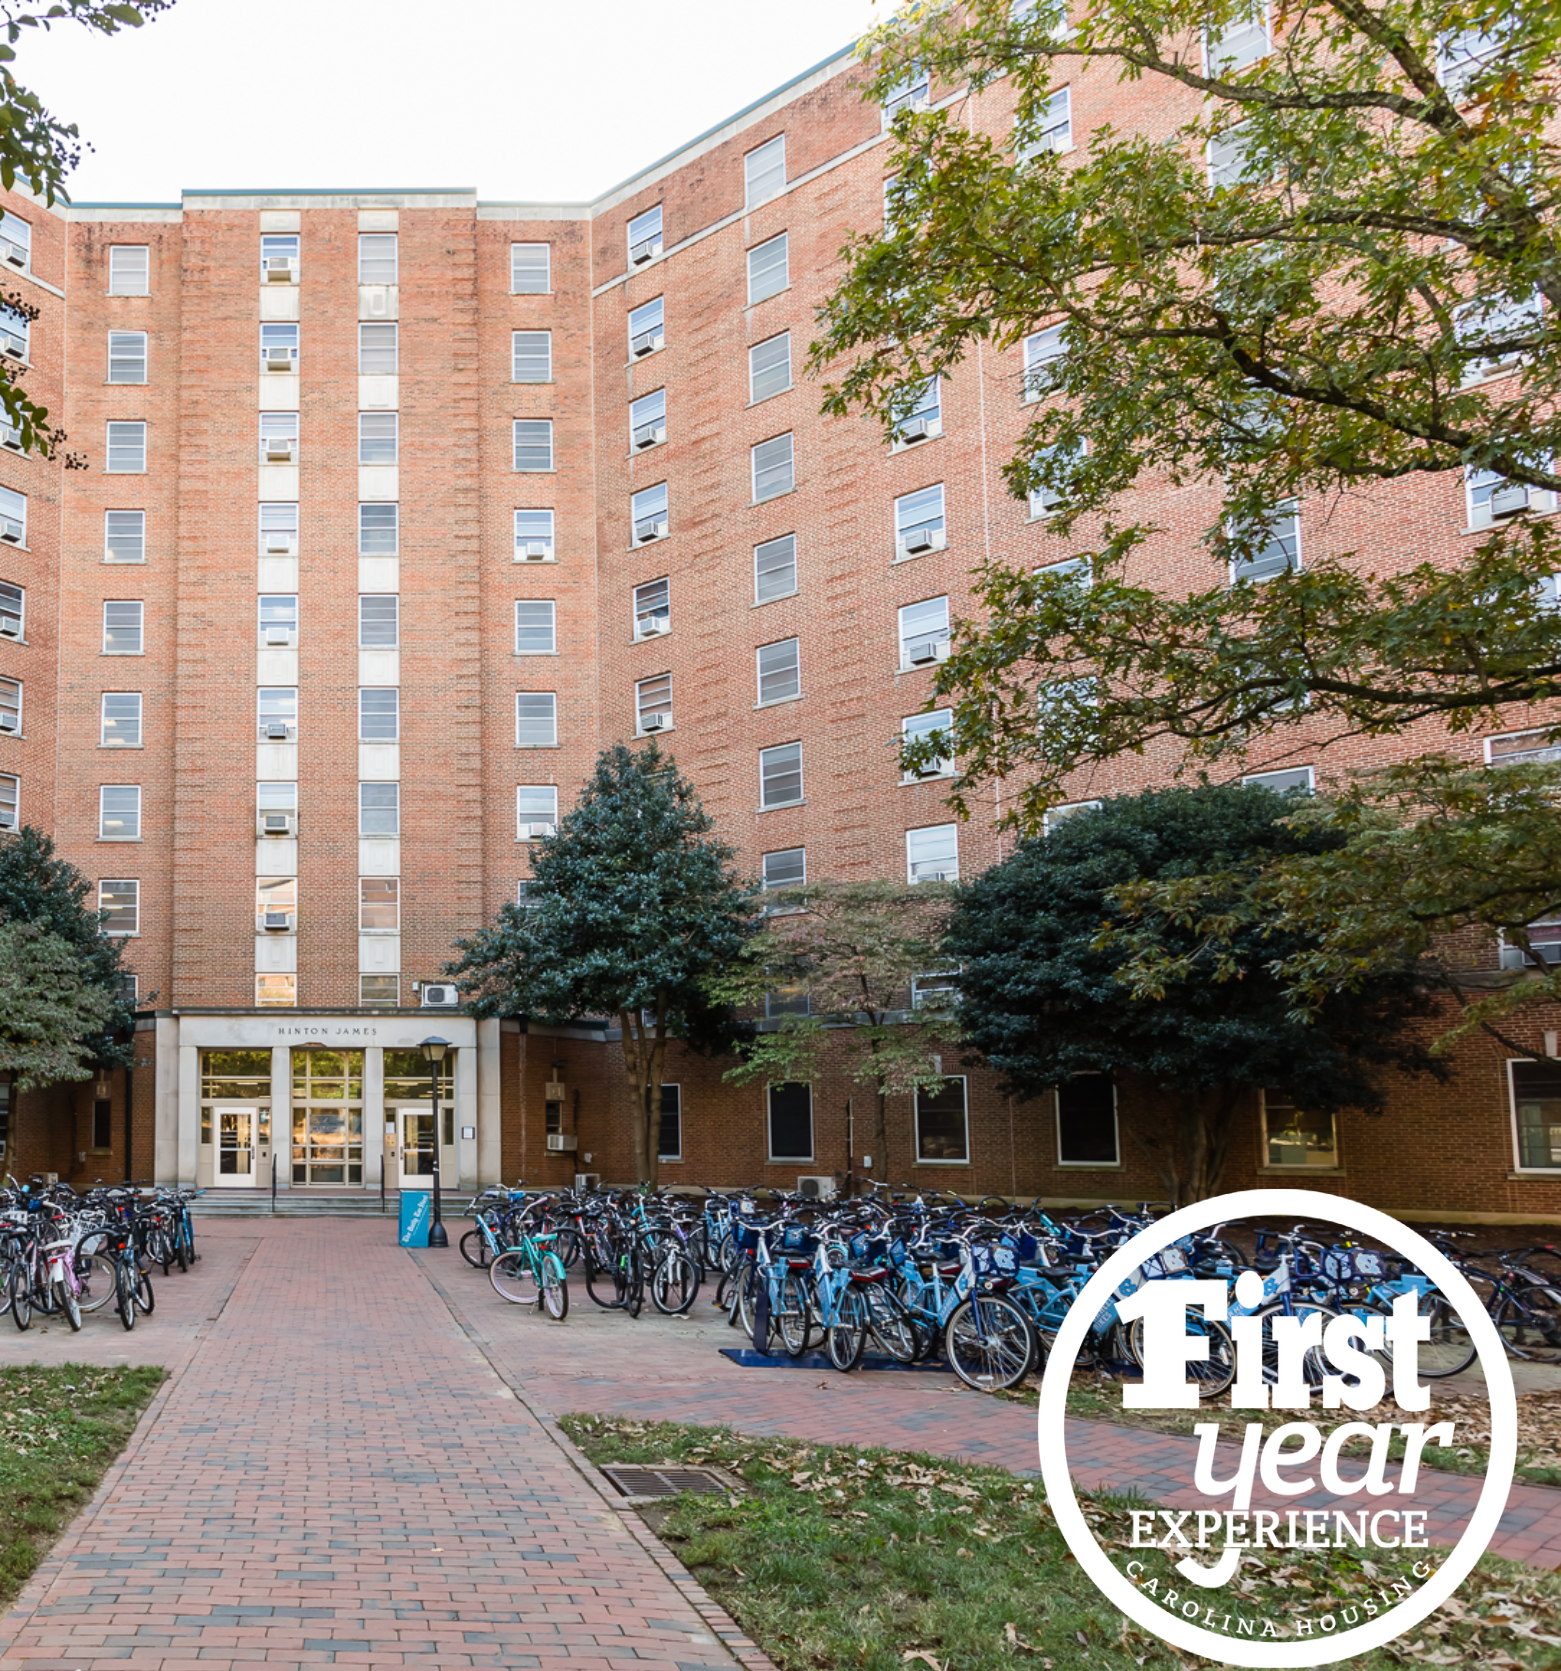 Hinton James residence hall with the First Year Experience logo in the right corner.